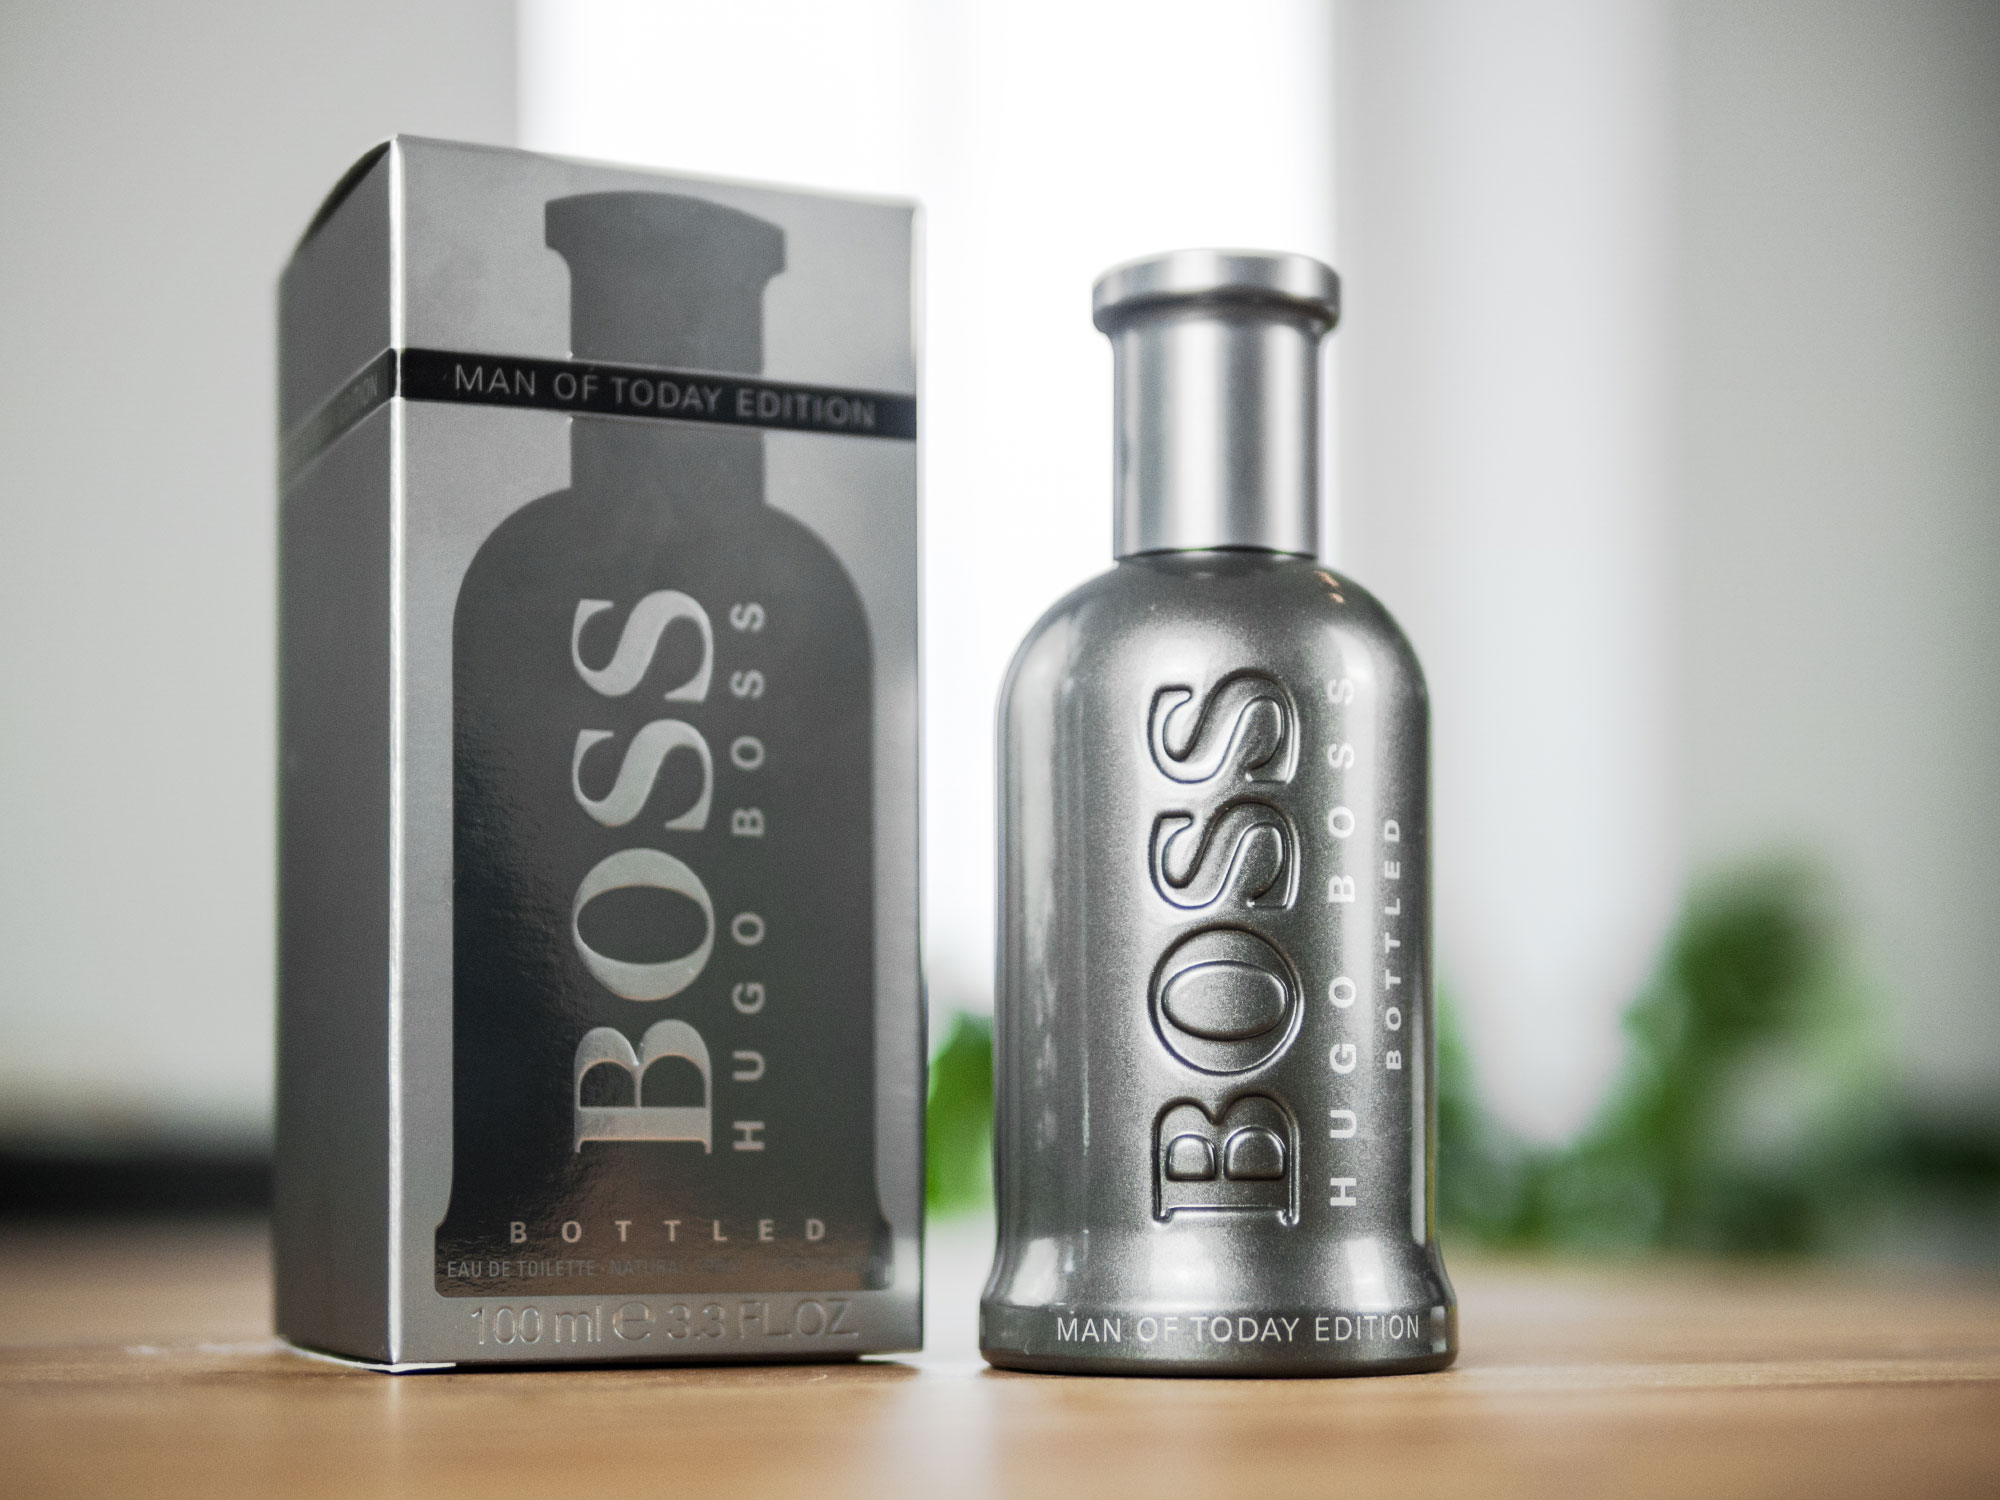 Hugo Boss, Boss, Boss Bottled, Parfüm, Herrenduft, Herrenparfüm, Produktreview, Beauty, Lifestyle, Limited Edition, Männer, Mann,